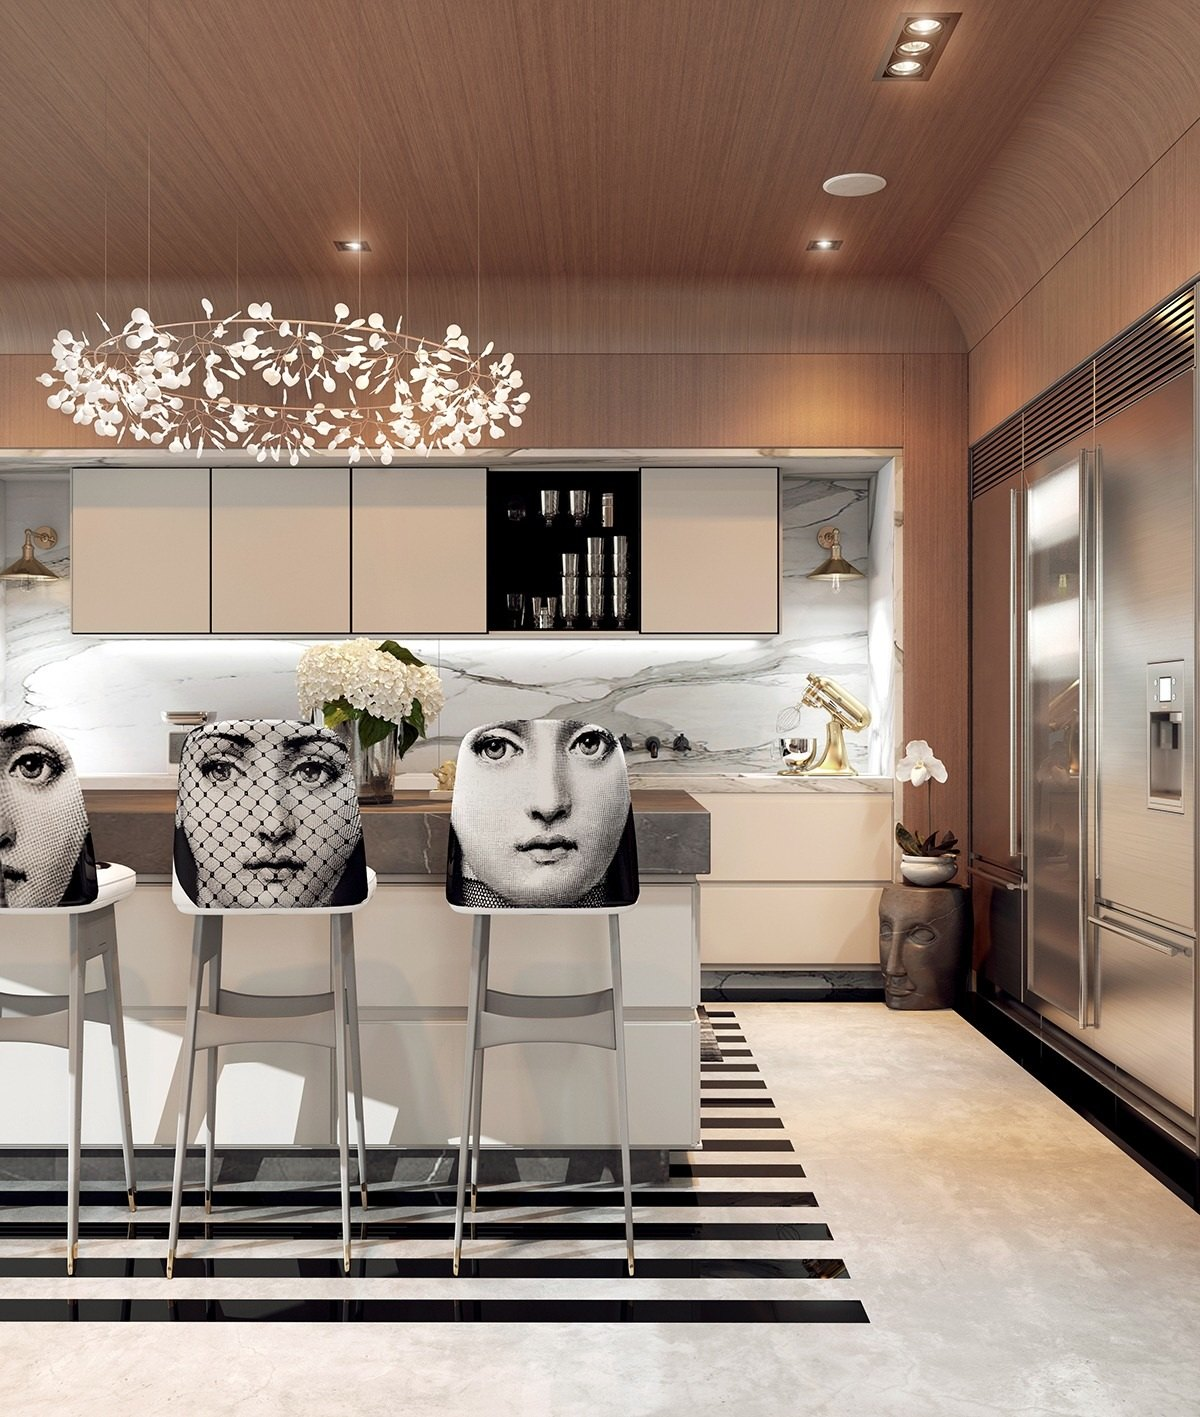 Modern Apartment Designs Ideas With Beautiful Artistic Decor - RooHome